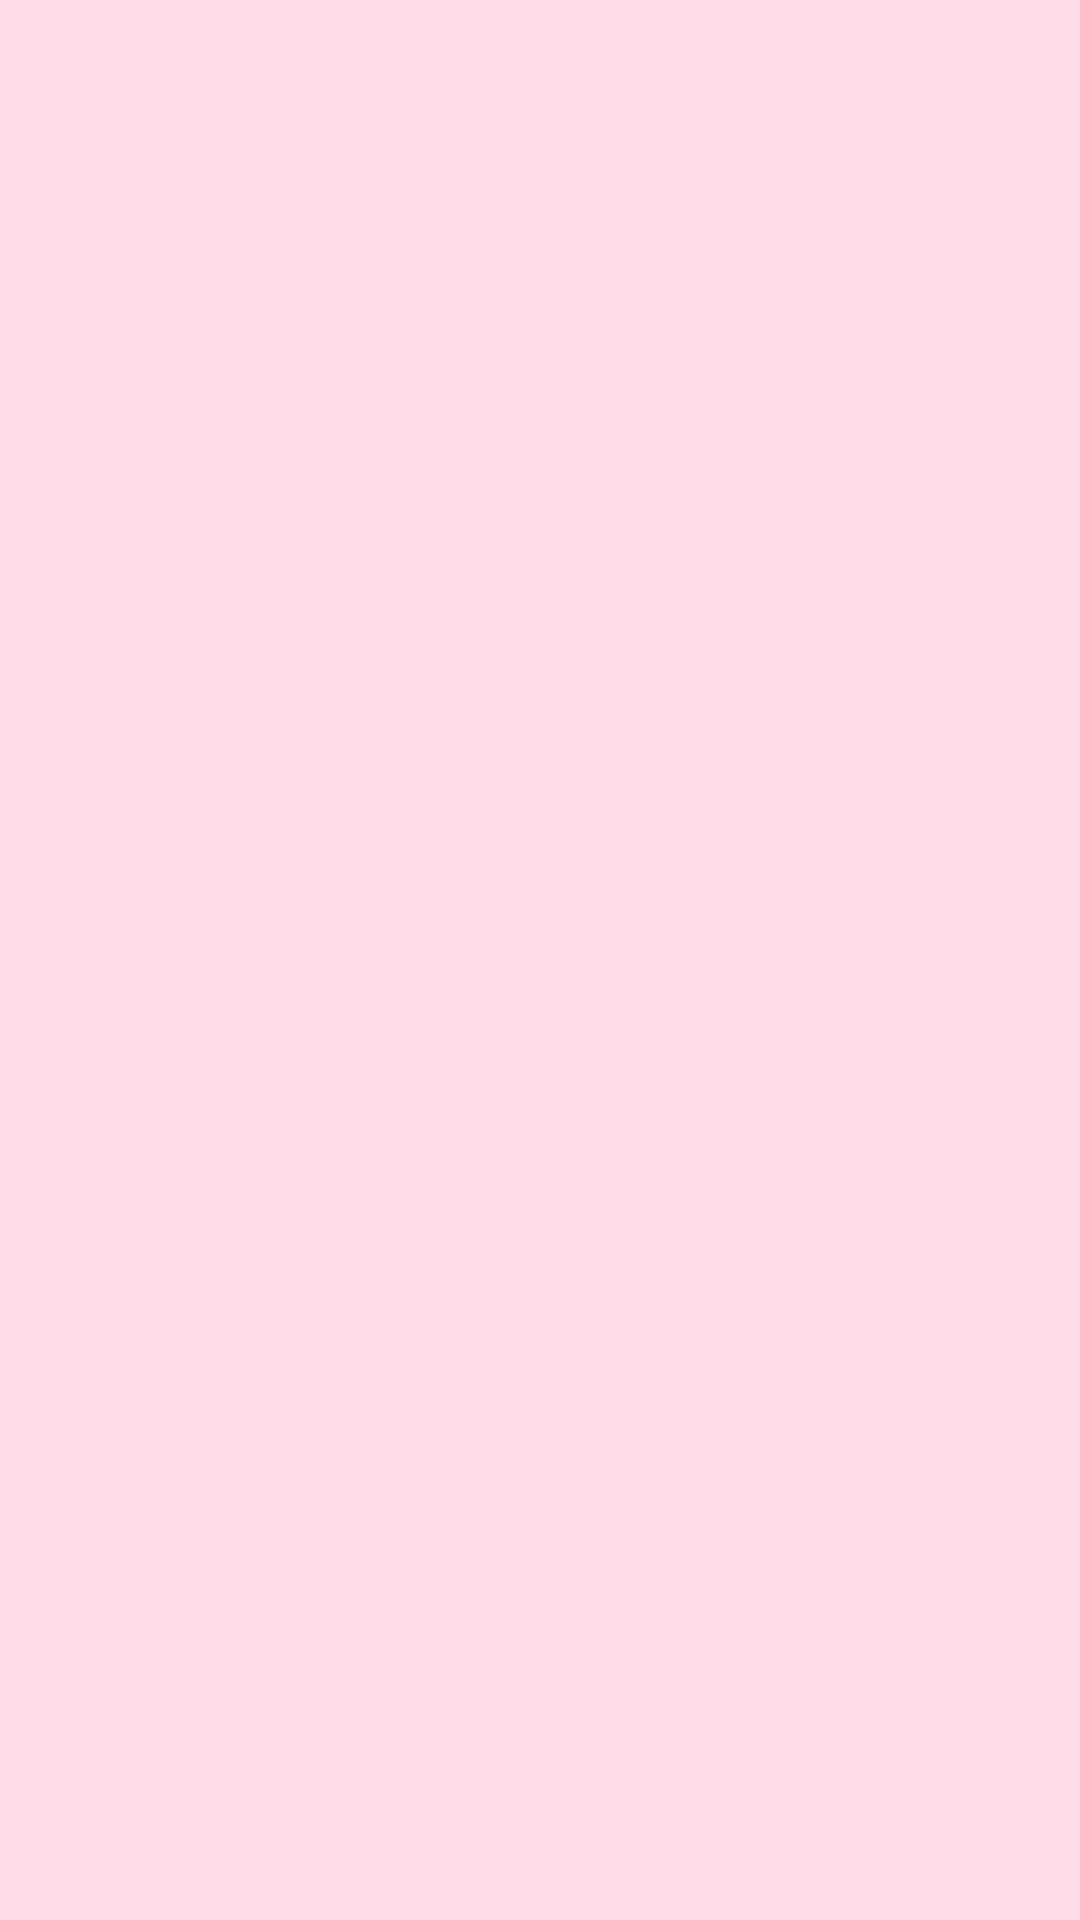 Plain baby pink wallpaper iPhone Wallpapers Pinterest